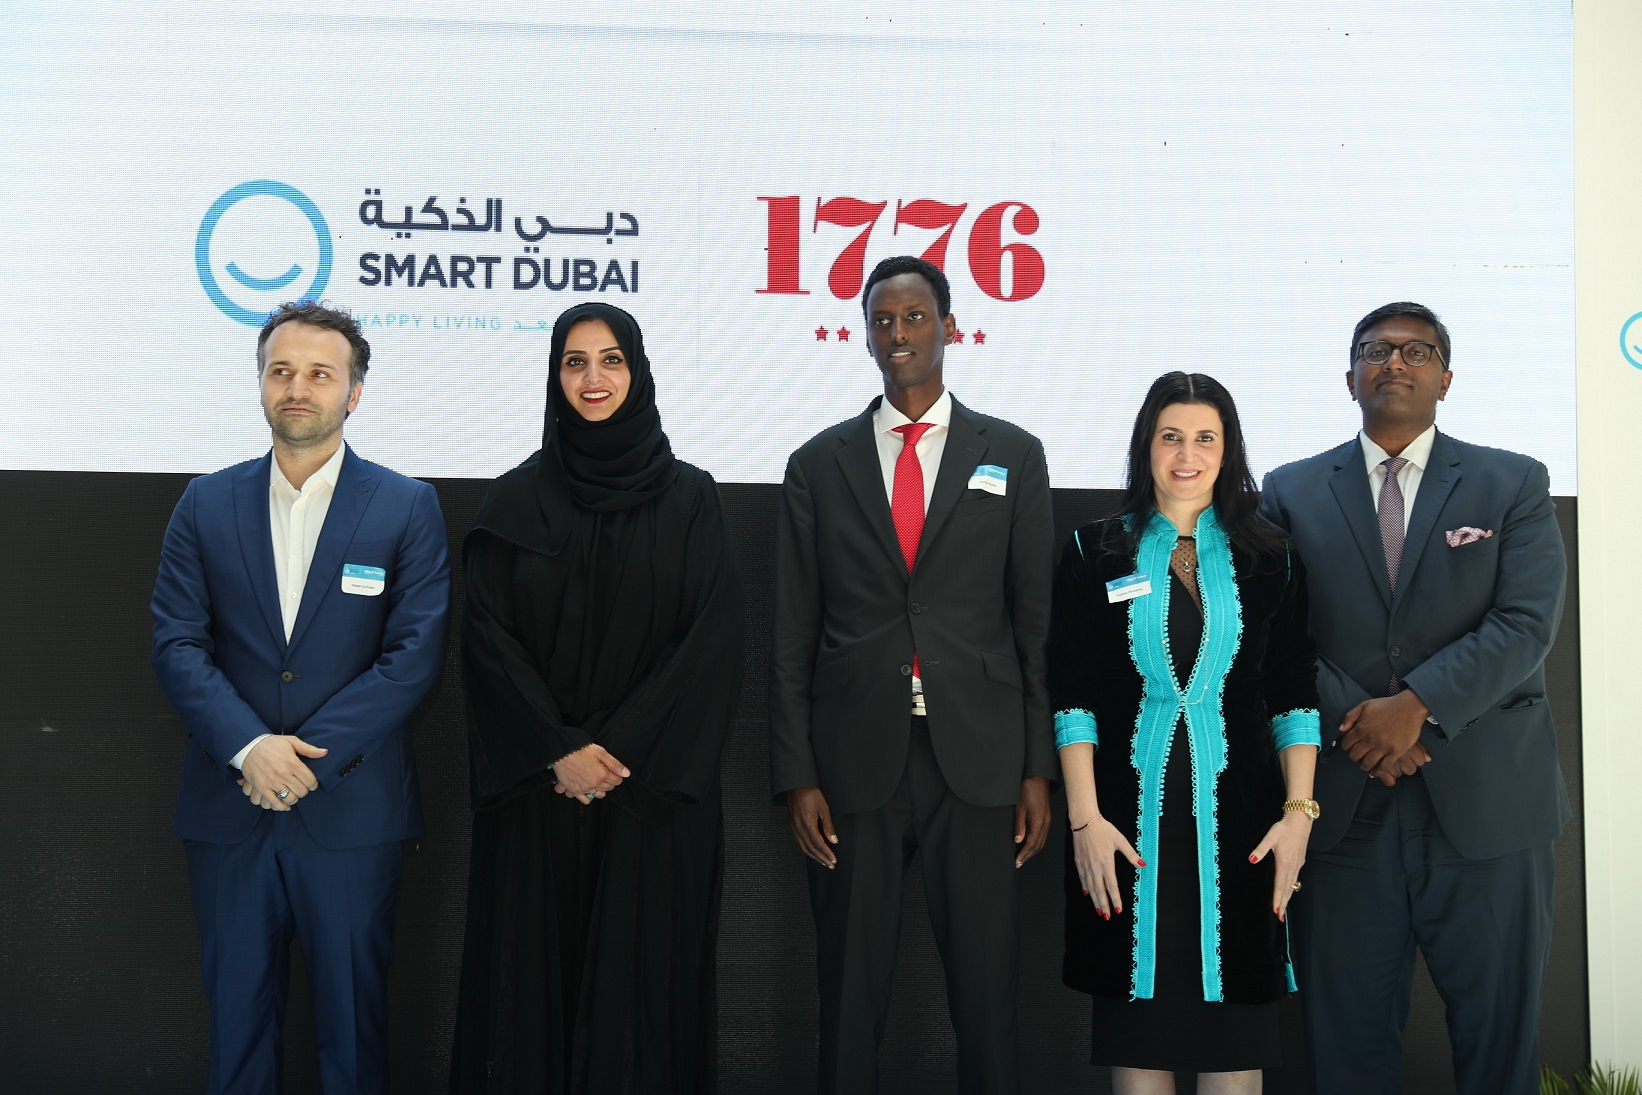 Smart Dubai Office and 1776 Announce Winners of the Global  Blockchain Challenge in Dubai